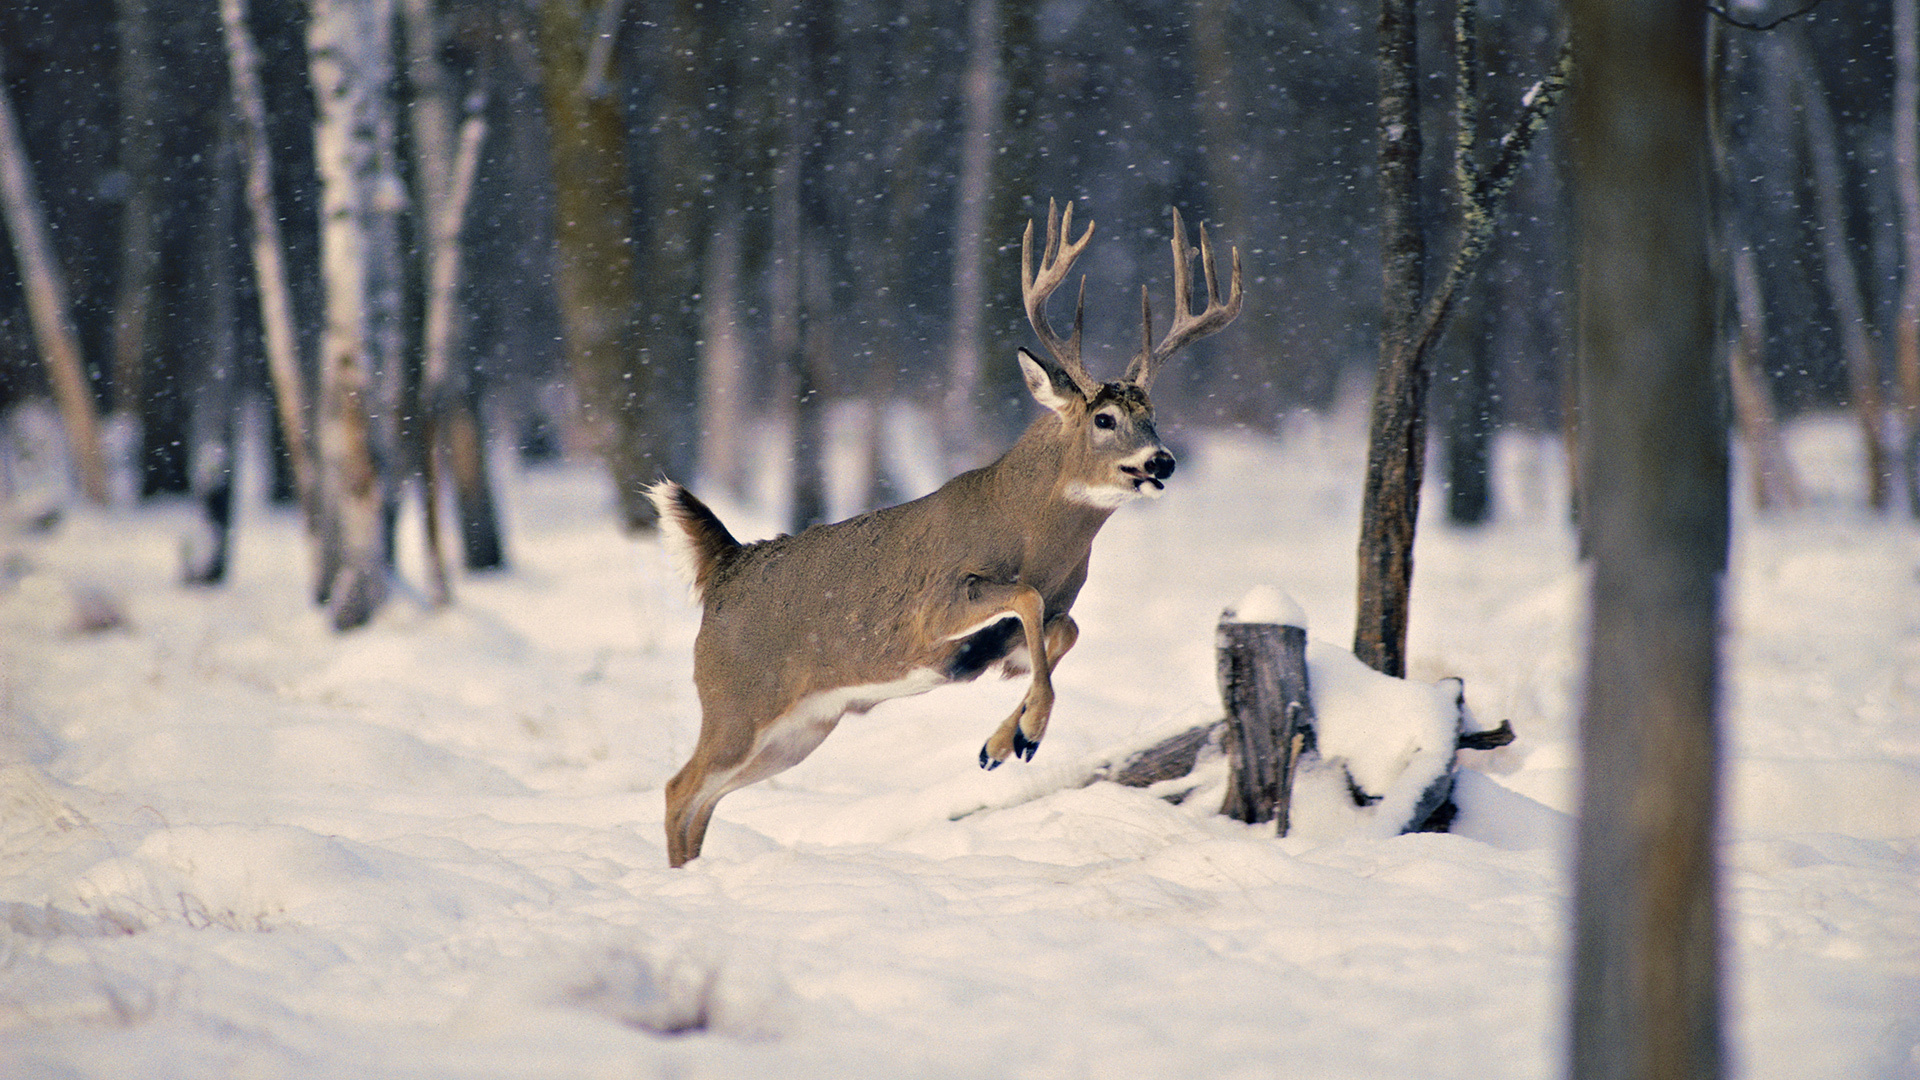 Wallpaper snow wood winter deer horn desktop wallpaper Animals 1920x1080